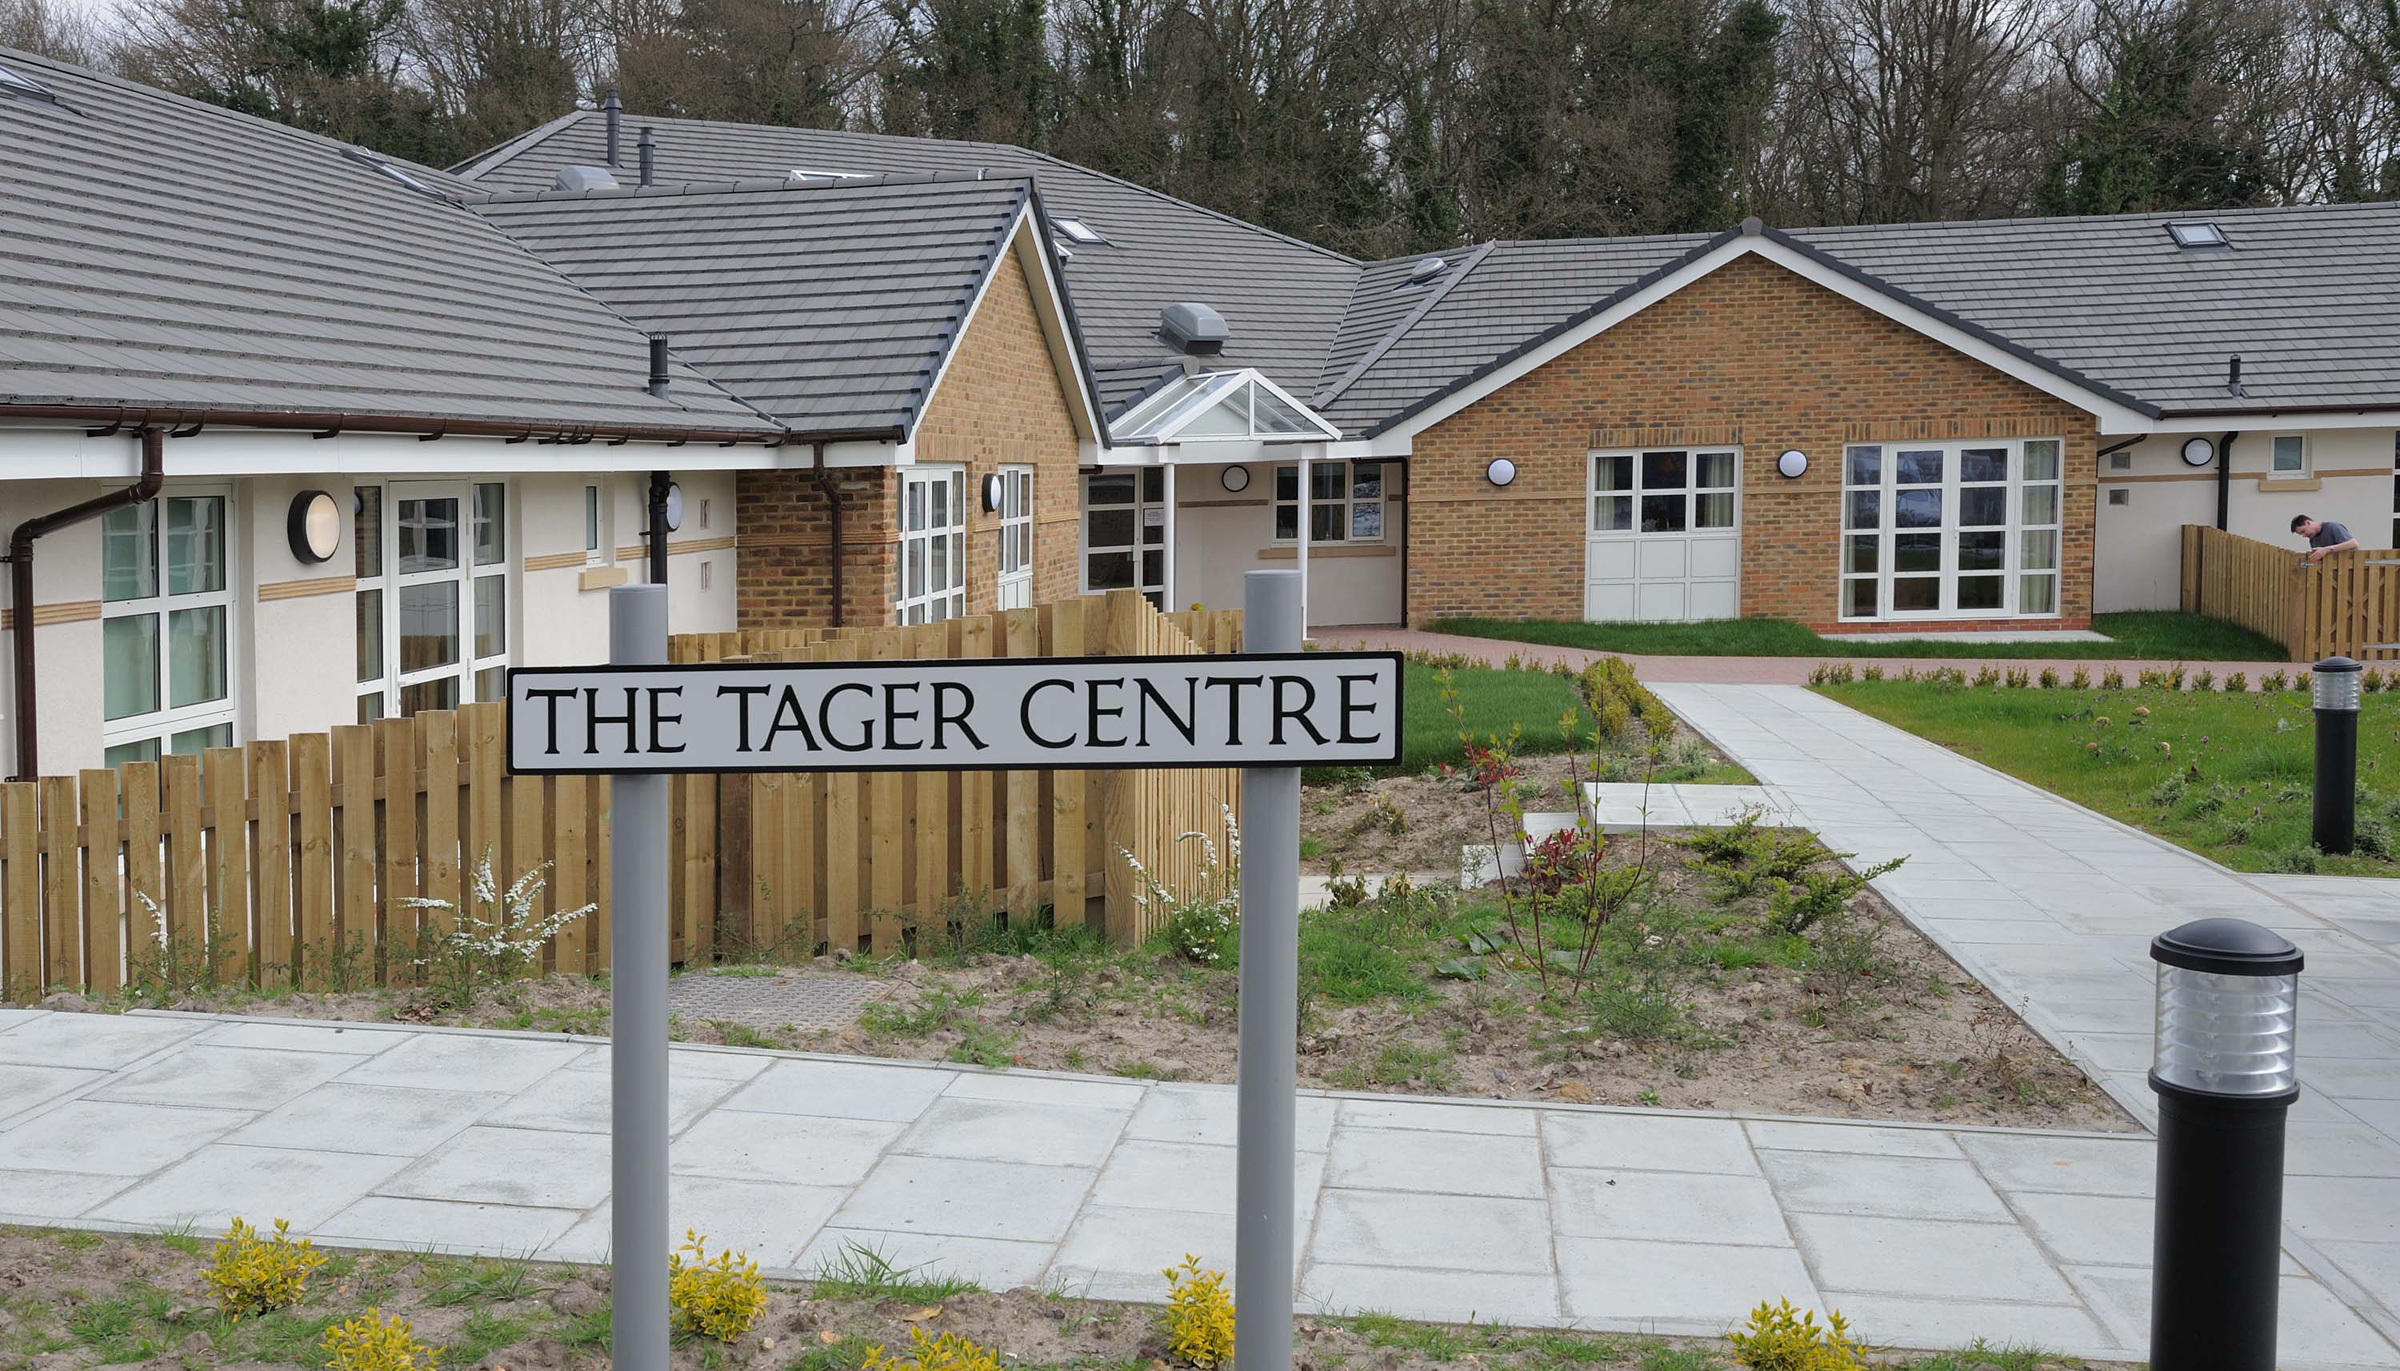 The Tager Centre